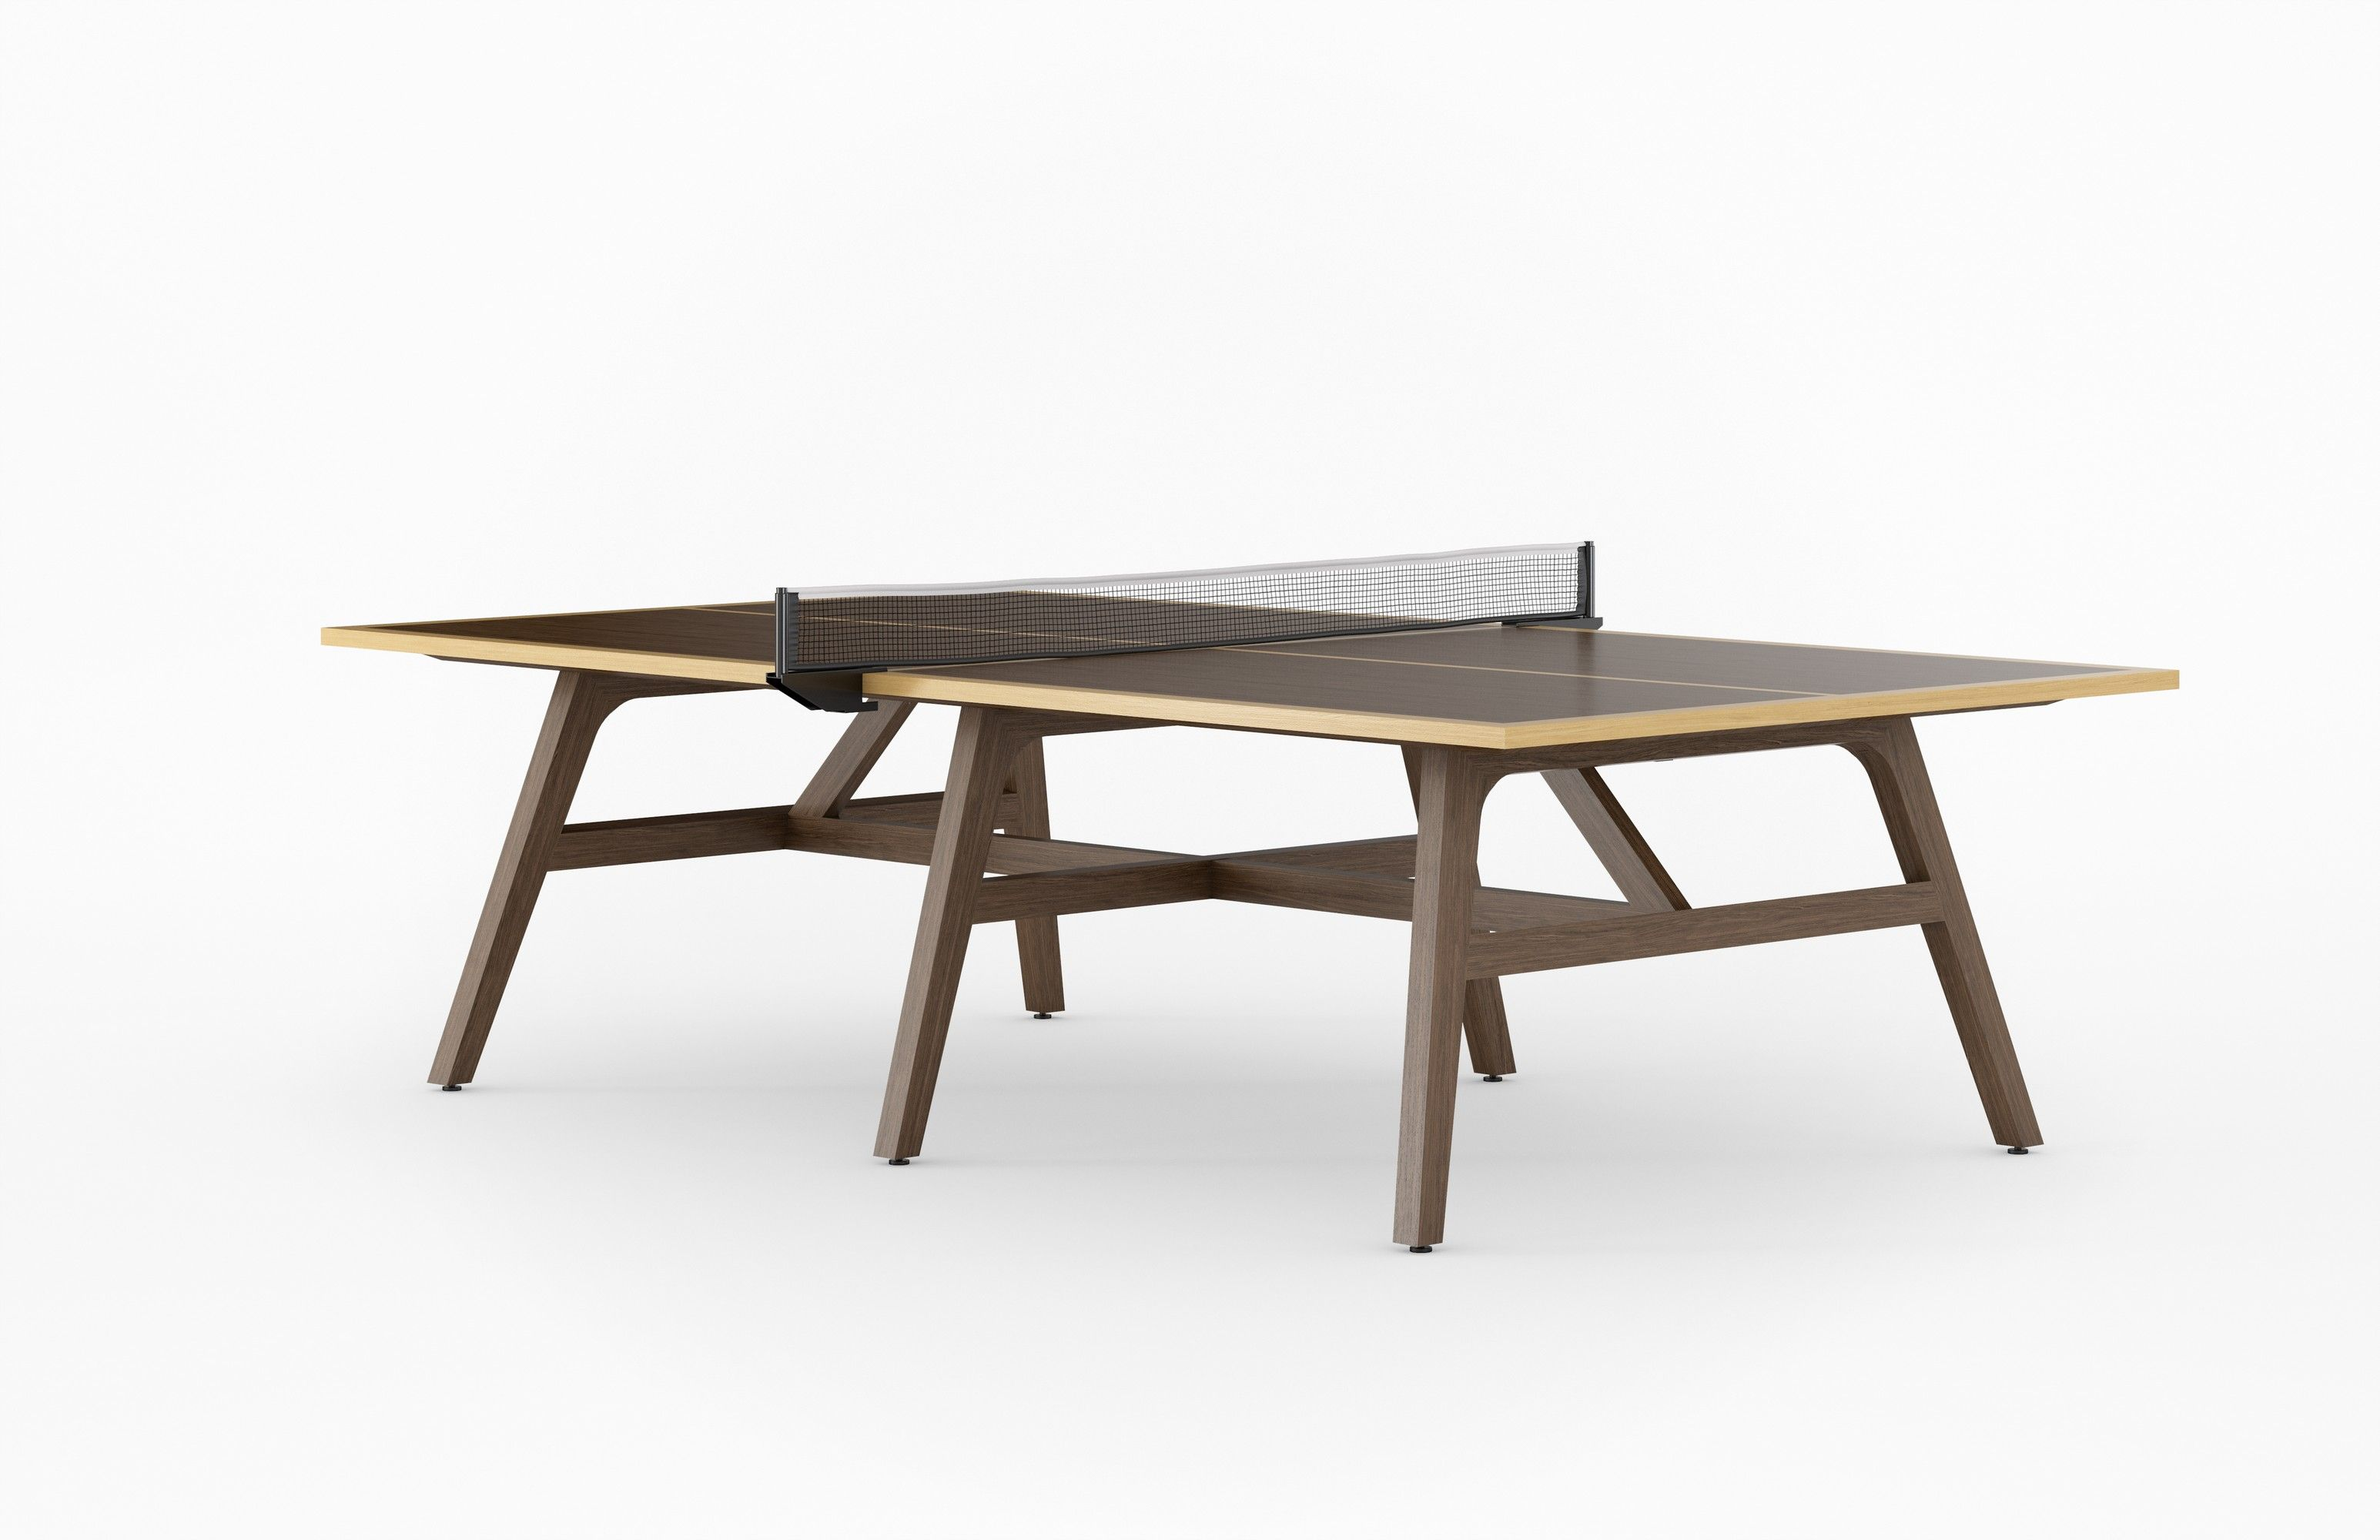 Designed by OFS Riff is a line of simple meeting and work tables